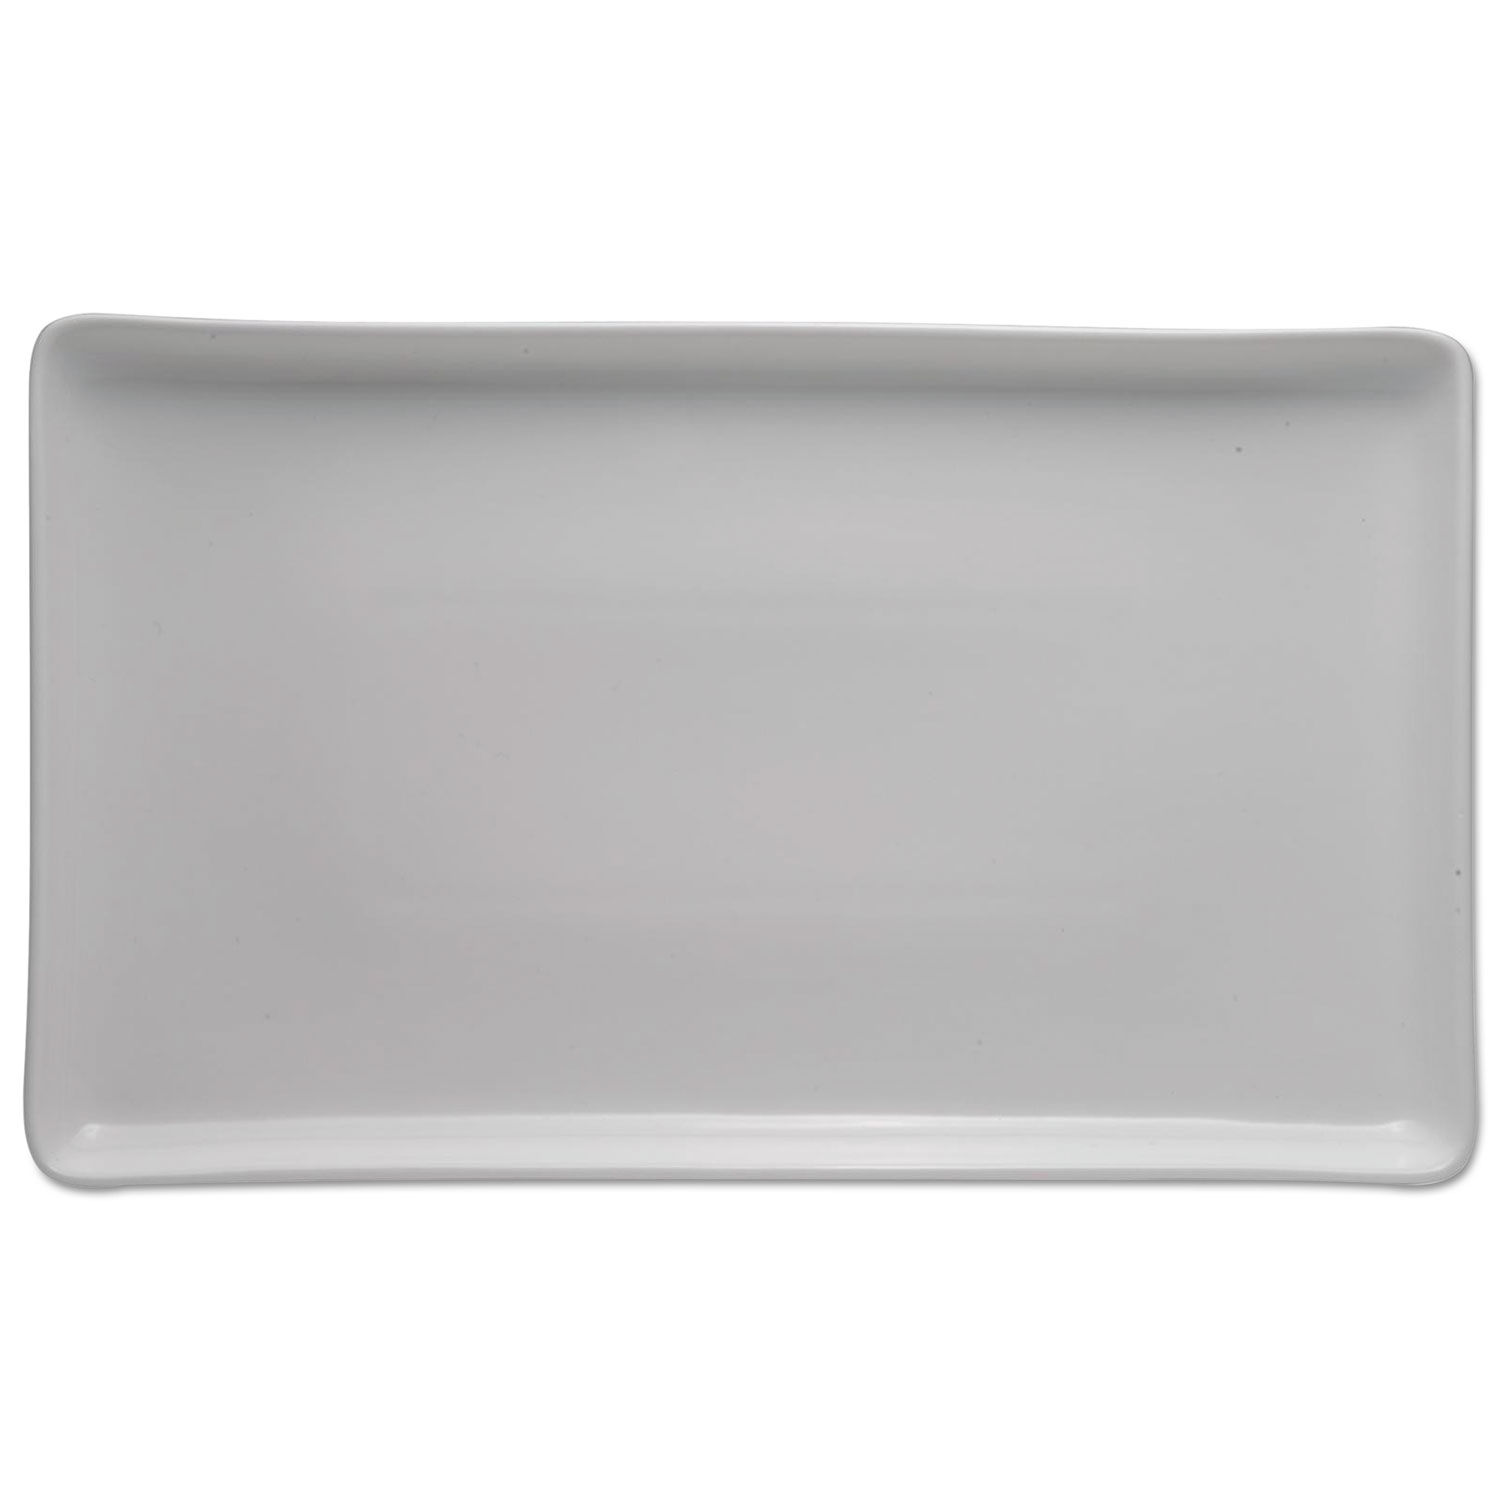 Chef's Table Fine Porcelain Serving Tray, White, 16 x 9 1/4